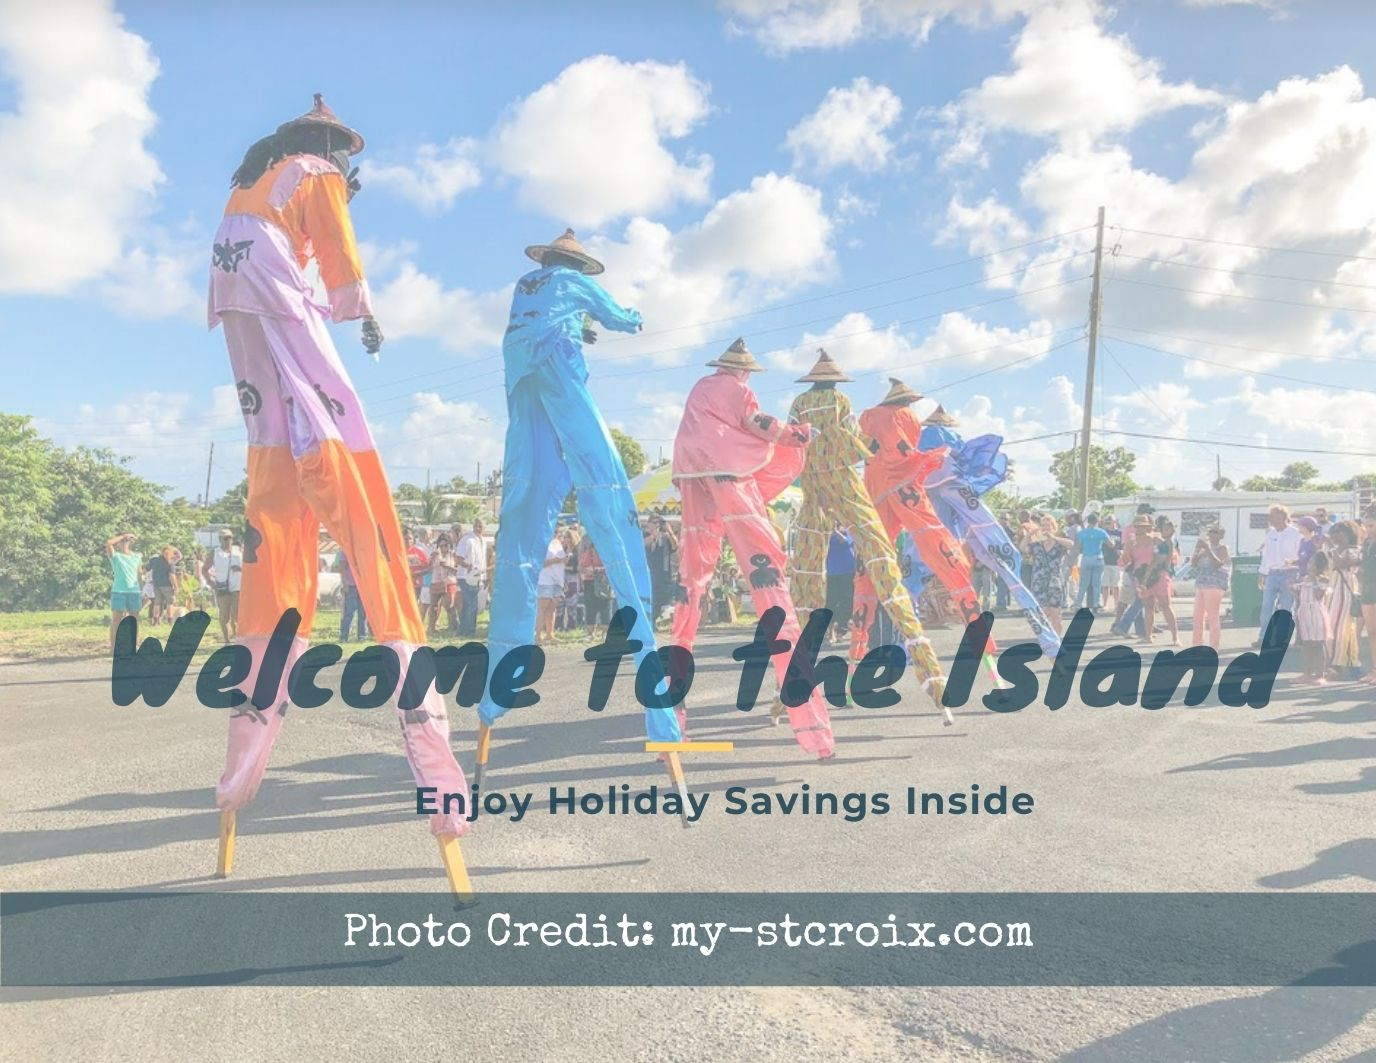 St. Croix Welcome Pack Cover